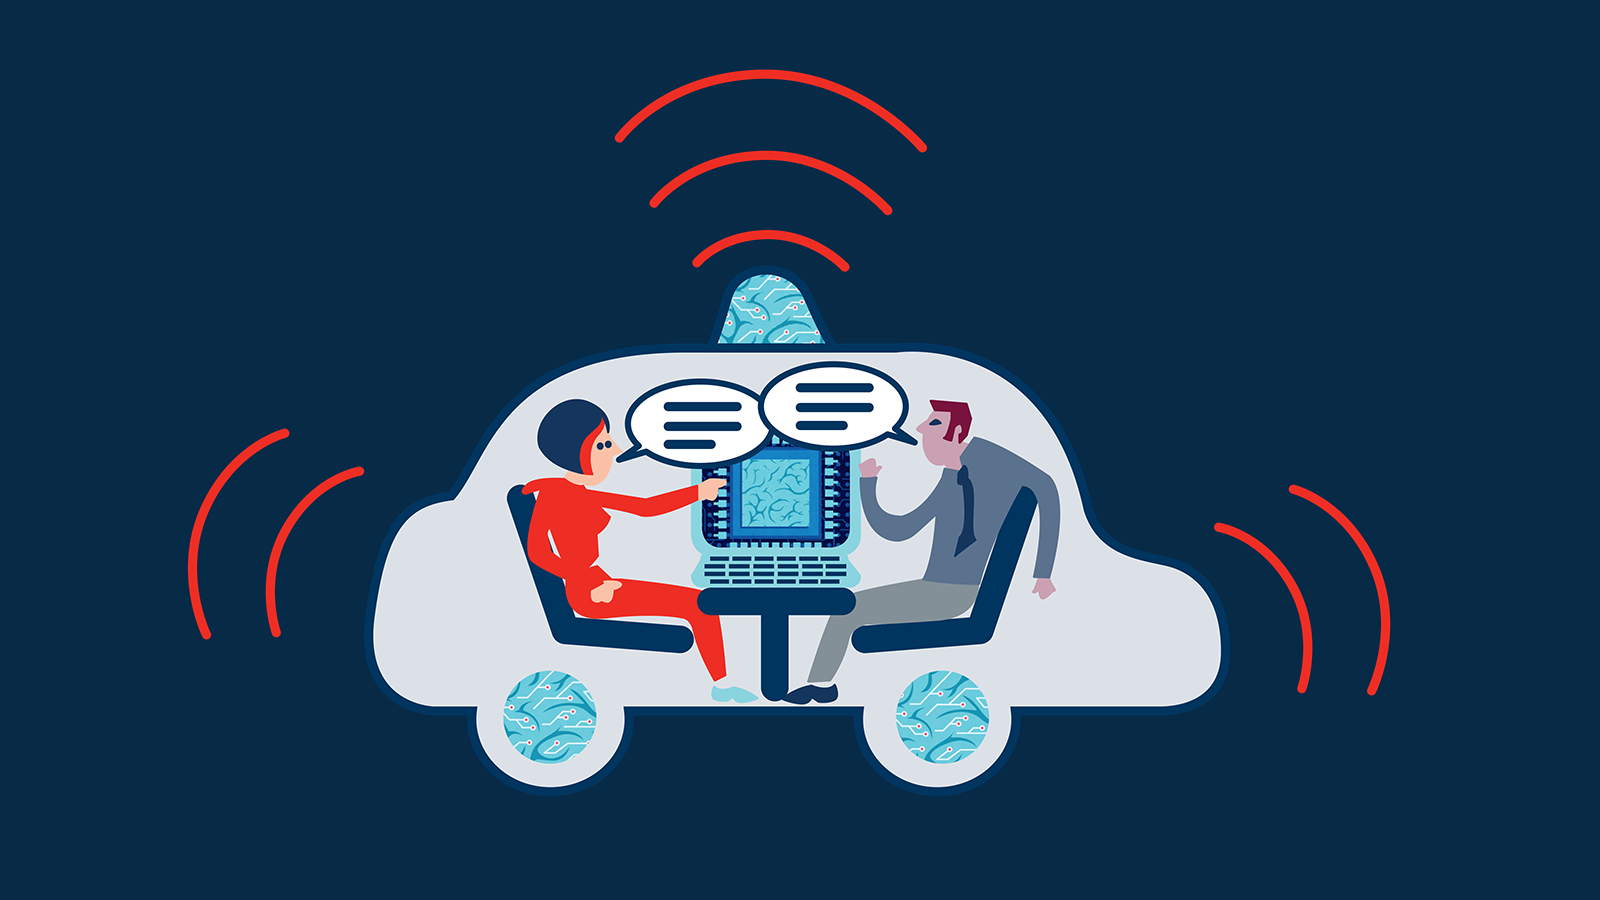 Illustration of people talking inside car that is transmitting signals.